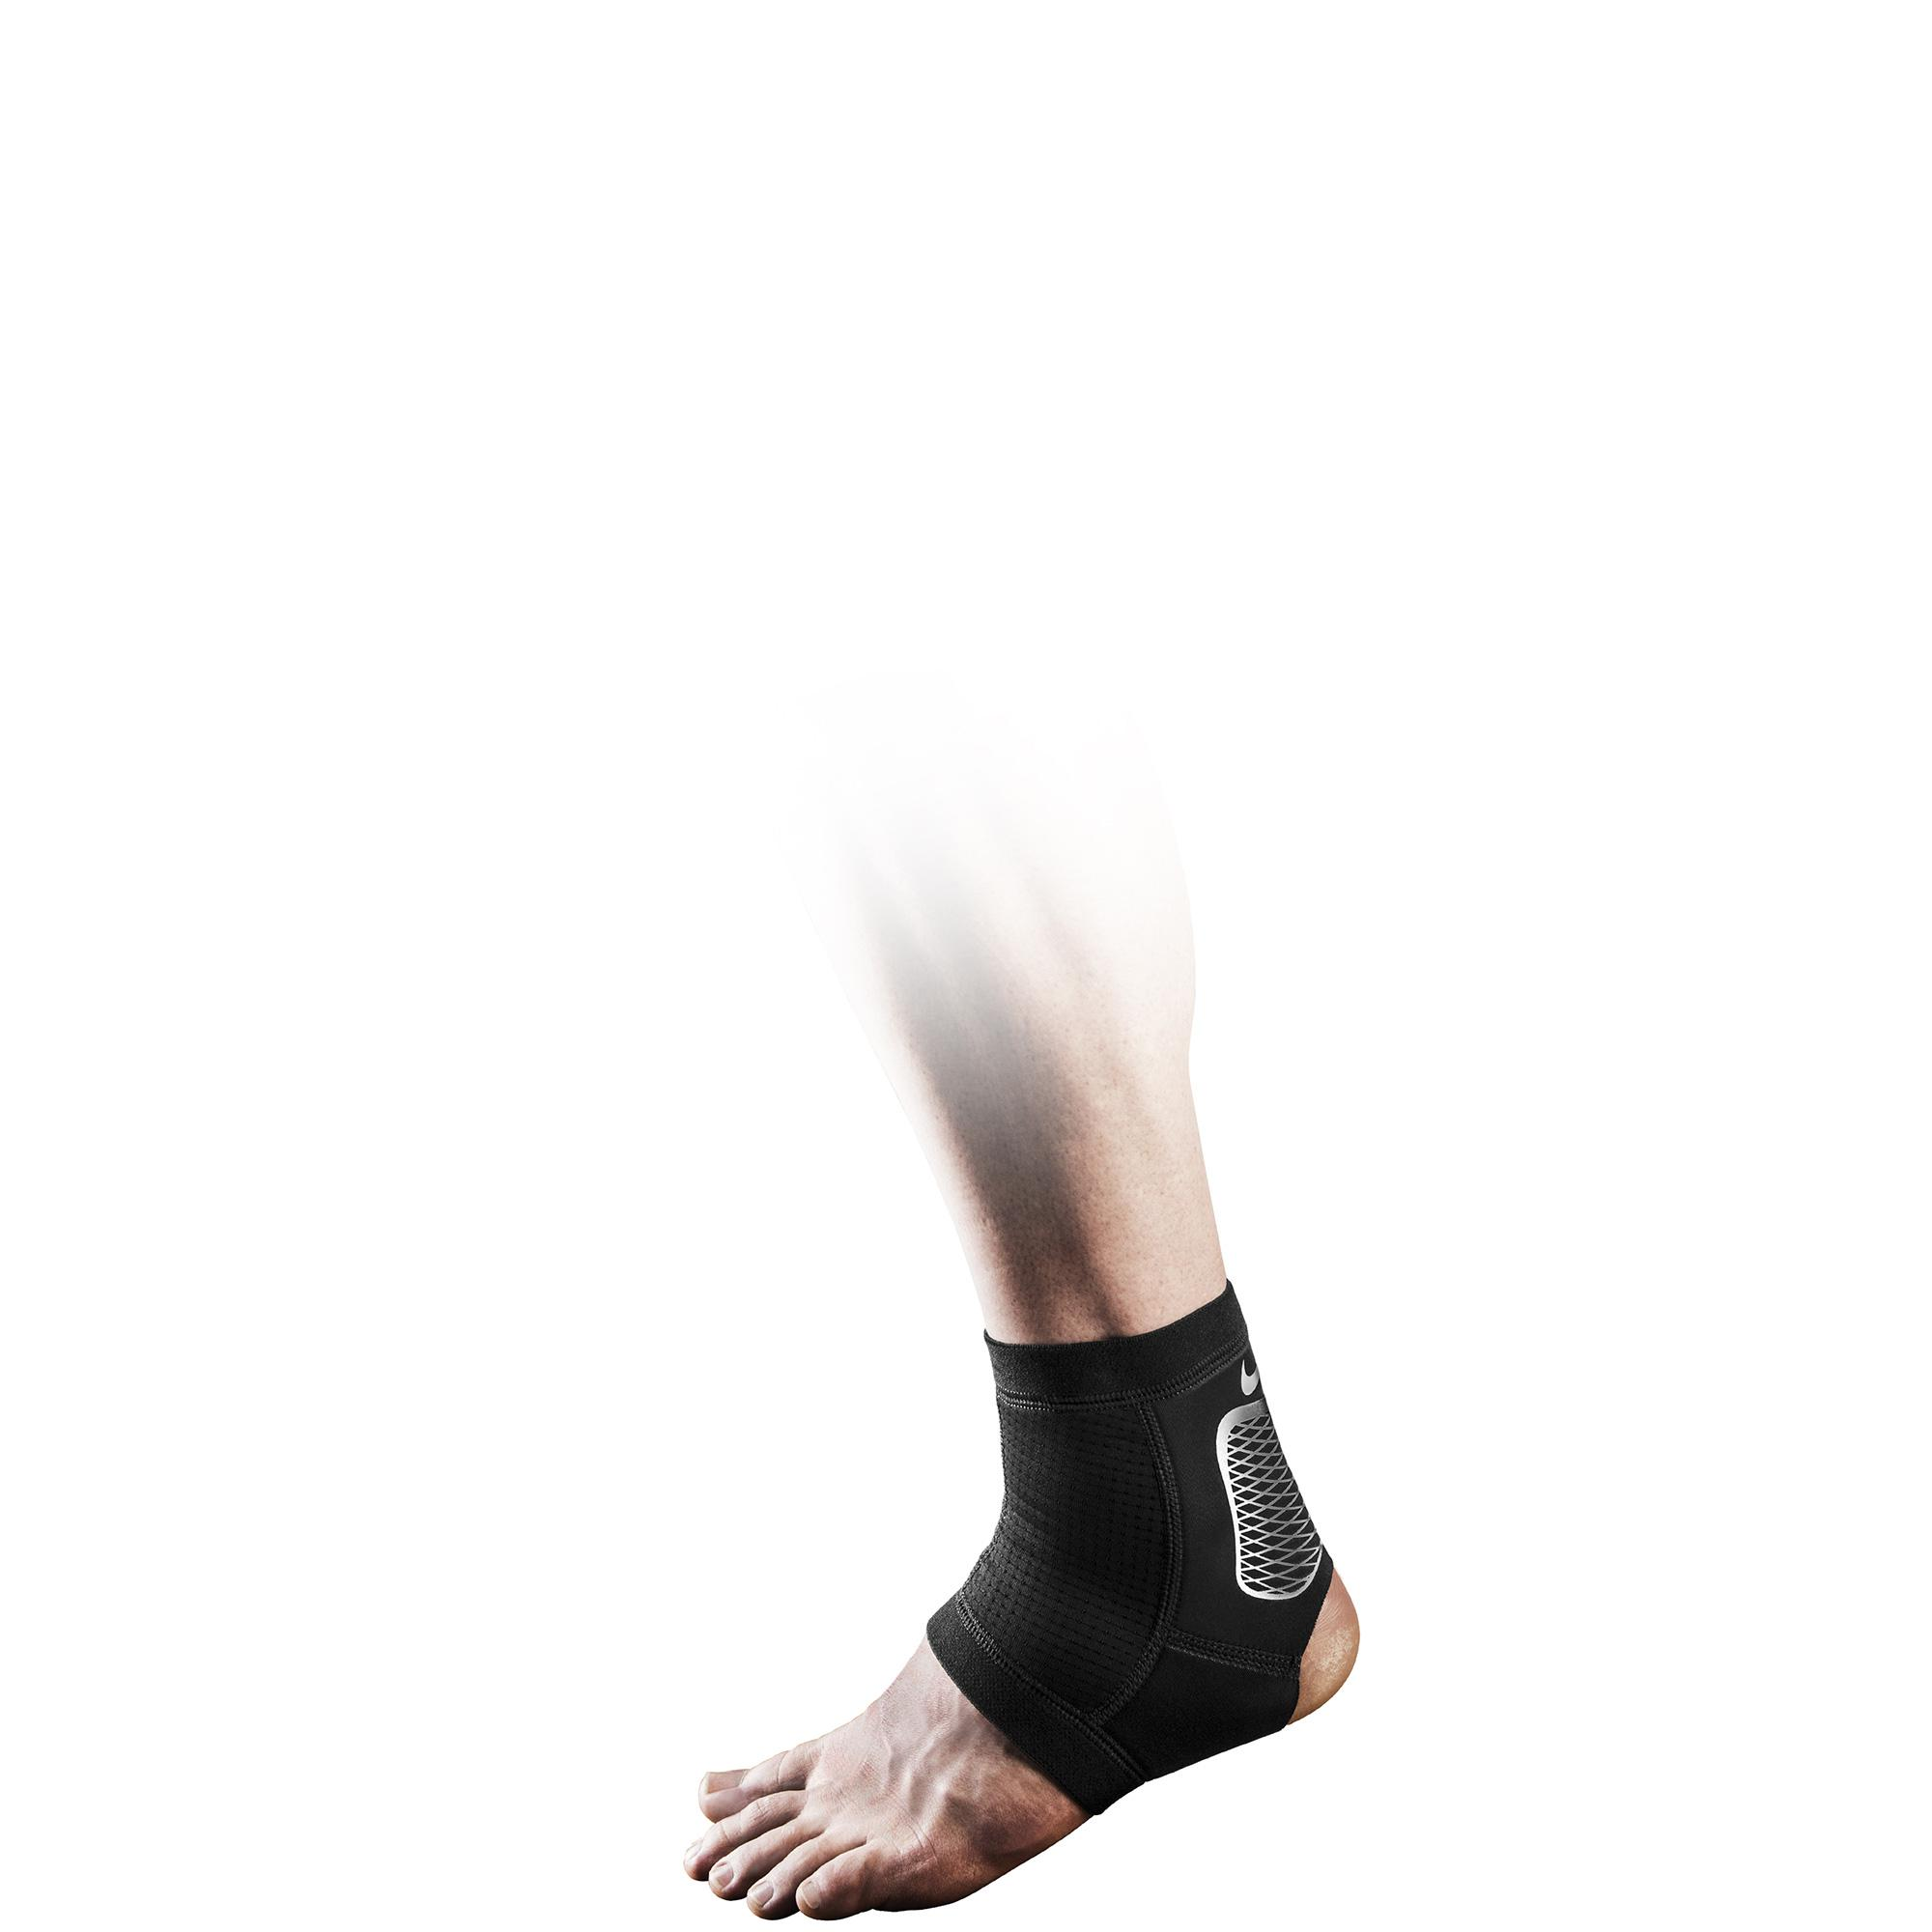 3957c1cd83 Nike Pro Hyperstrong Compression Ankle Wrap 2.0 - Black - Tennisnuts.com